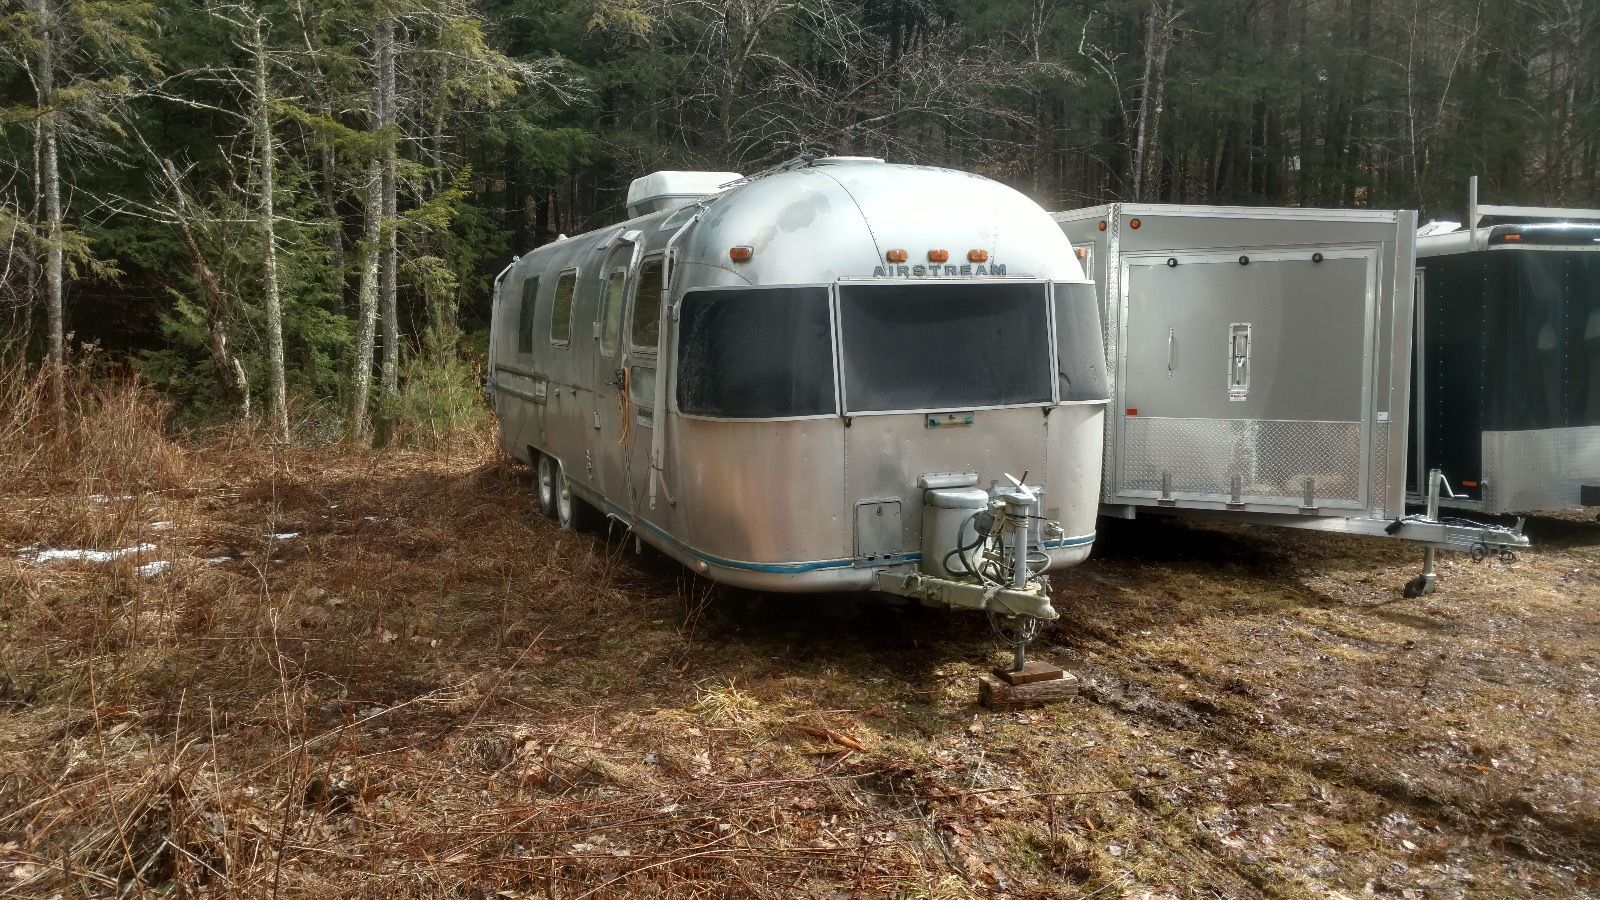 Vintage 1978 Airstream Sovereign camper trailer